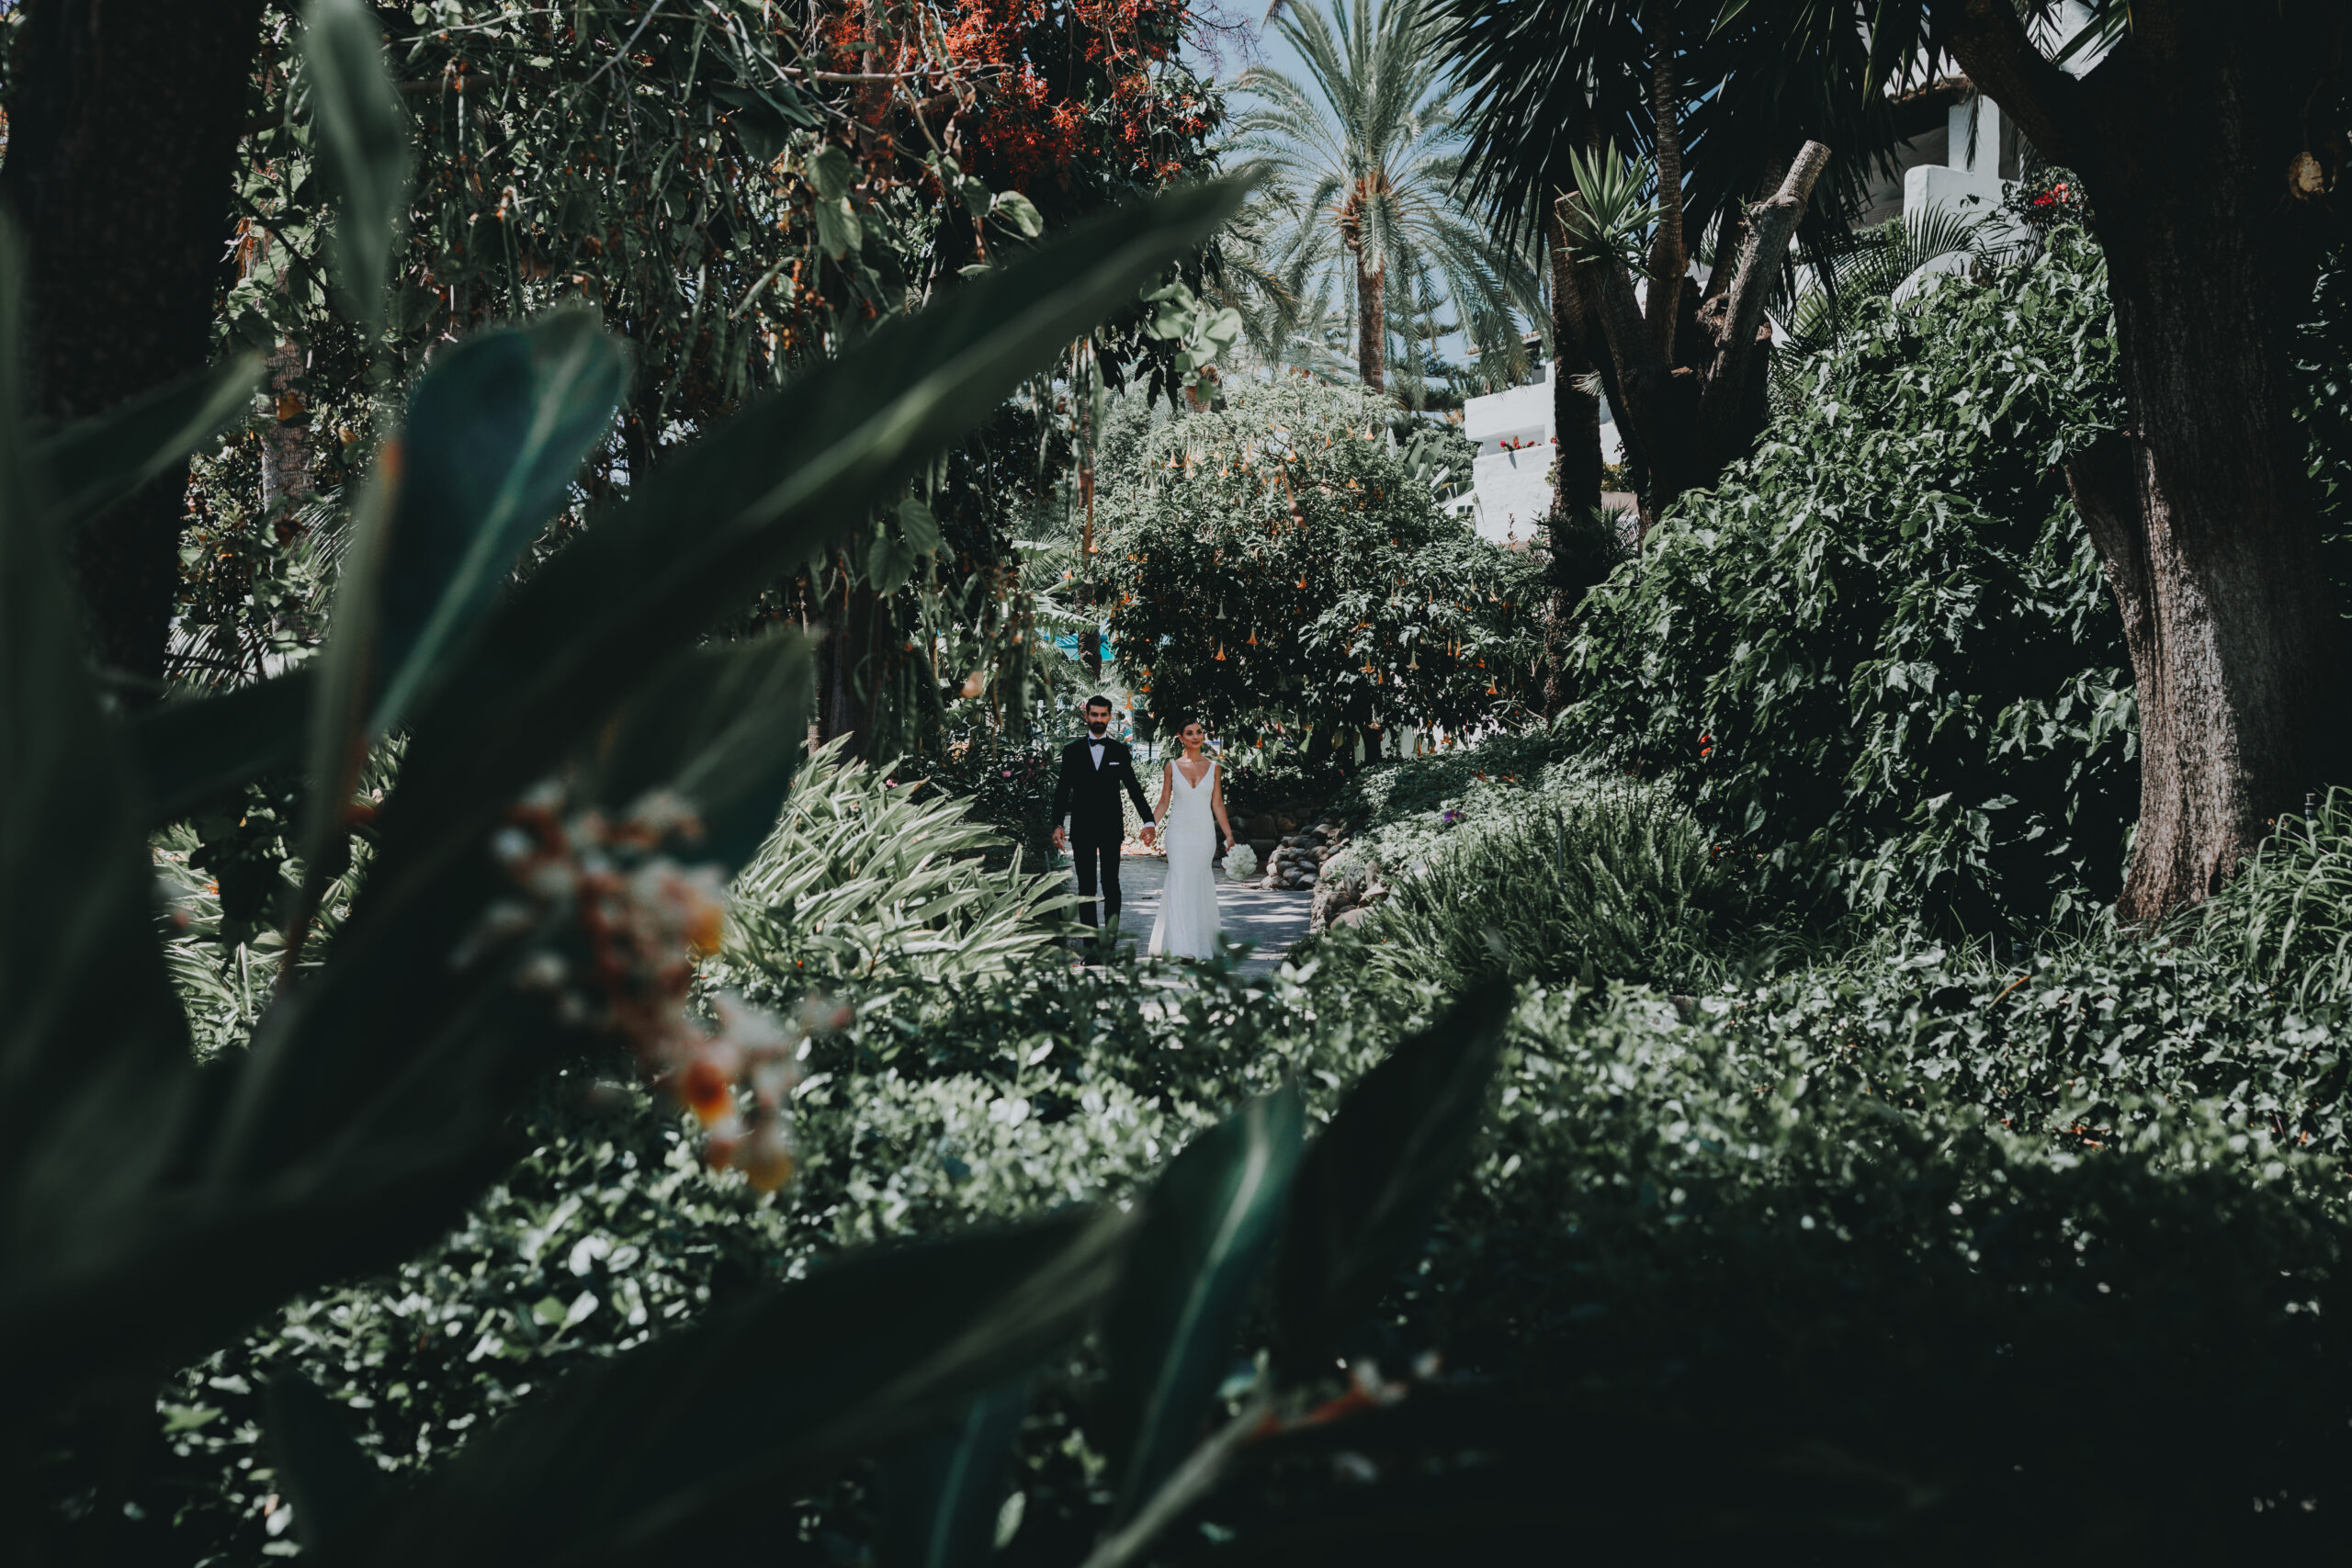 The bride and groom in the grounds of the stunning gardens - Gino K photography